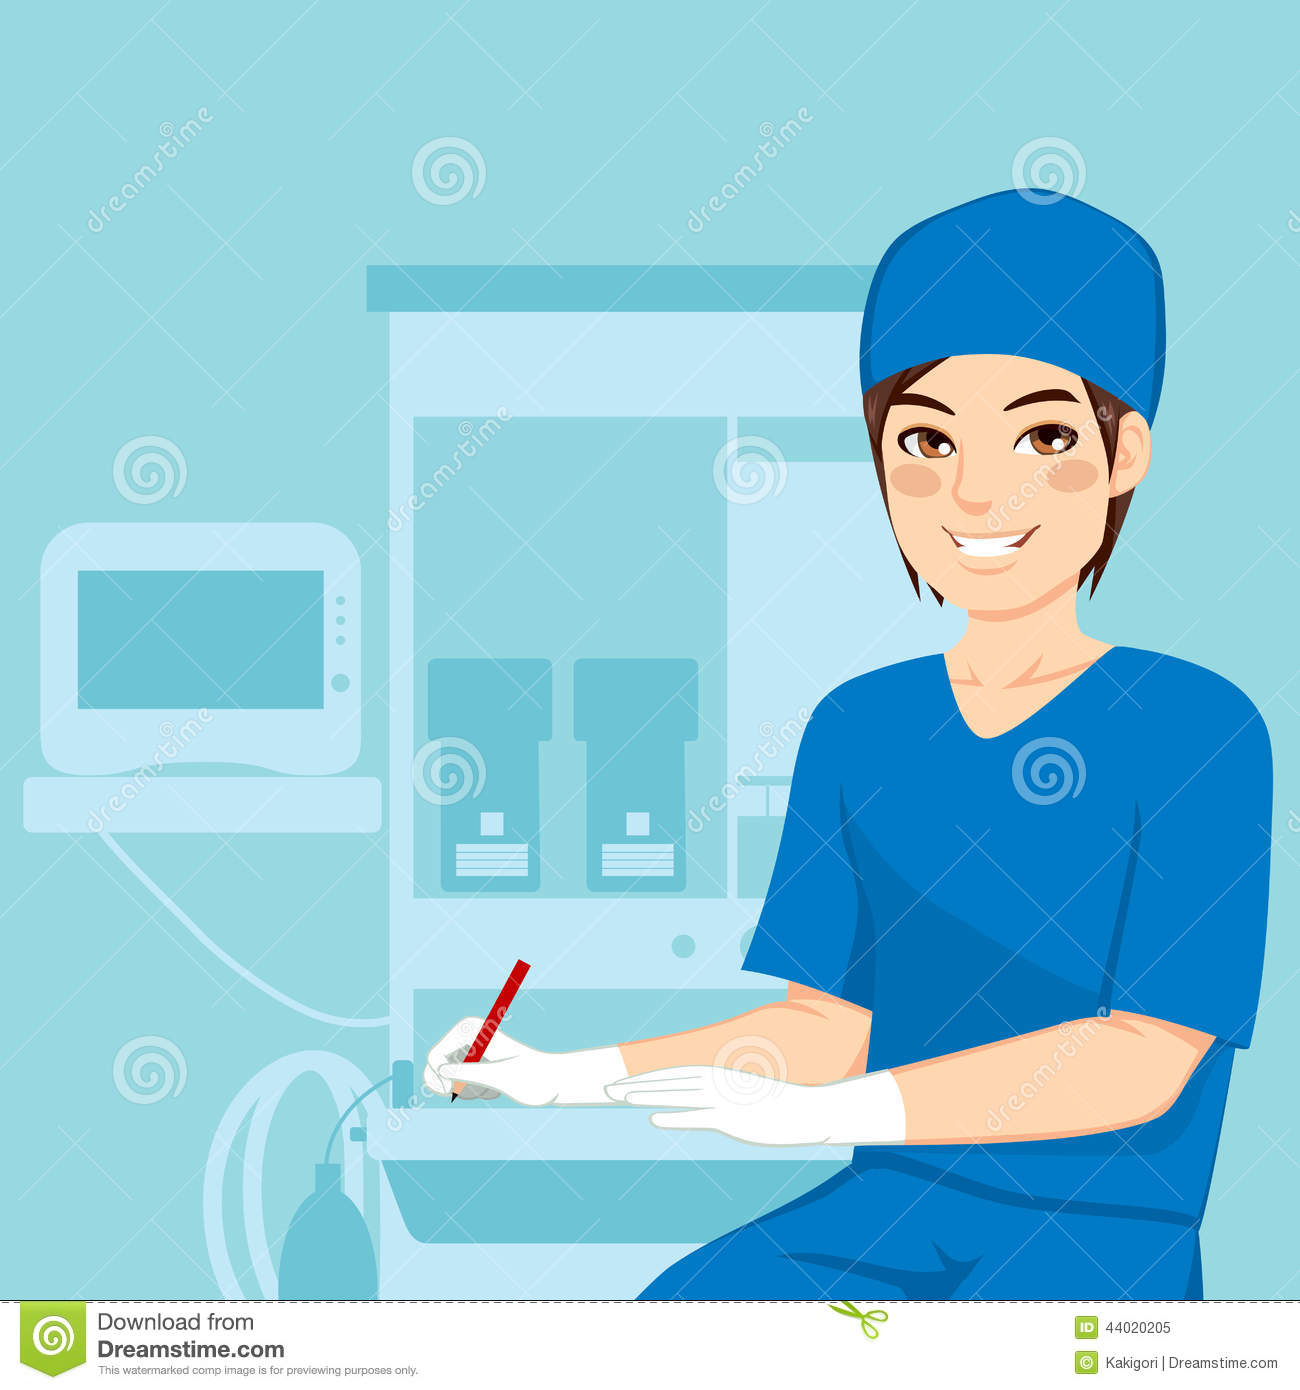 Historical Figure In Nurse Anesthesia Essay Homework Example